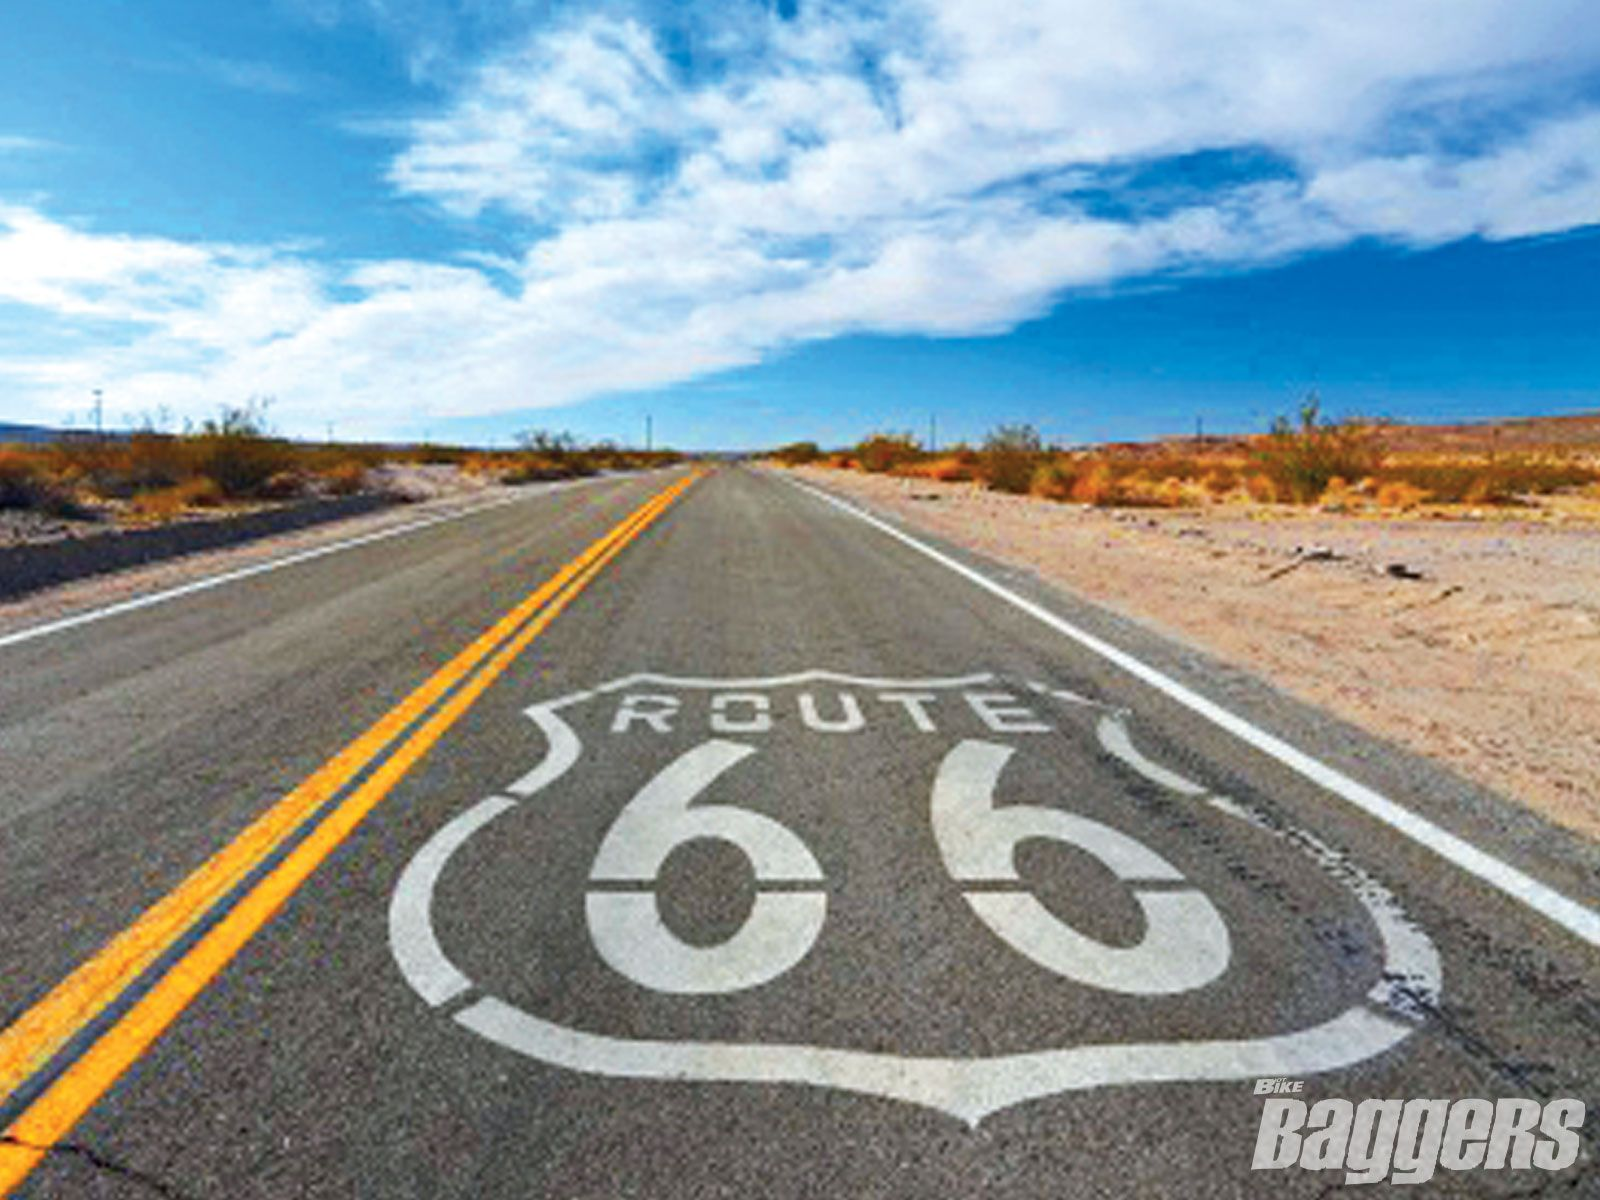 17 best images about route 66 on pinterest arizona toronto and